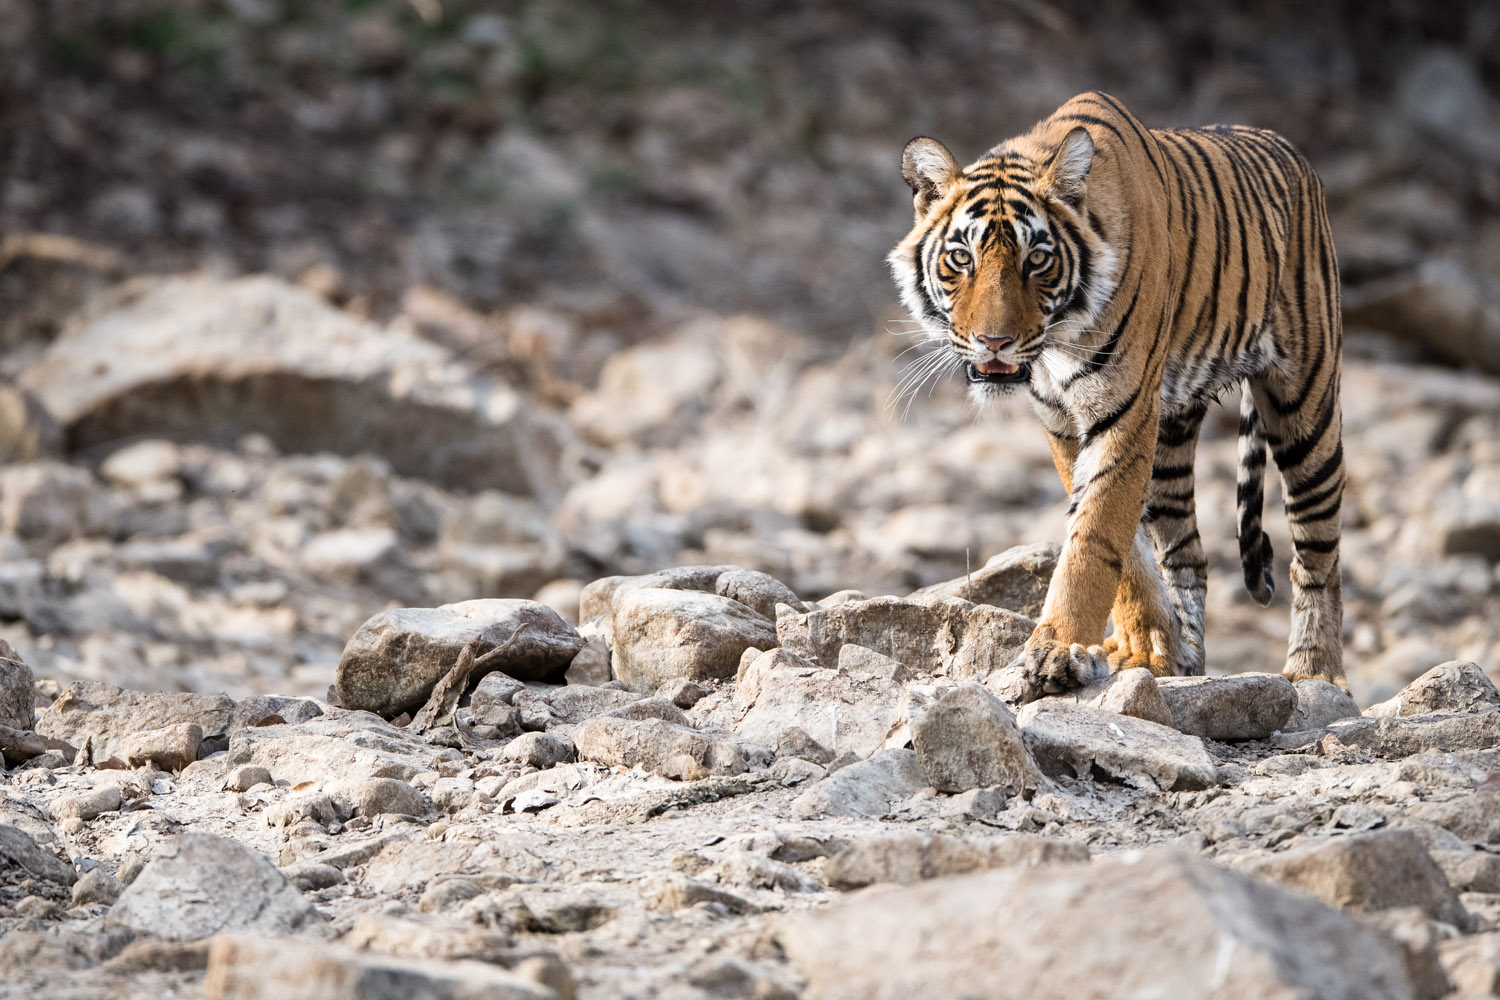 Bengal tigress walking along dry rocky river bed, Ranthambhore National Park, Rajasthan, India